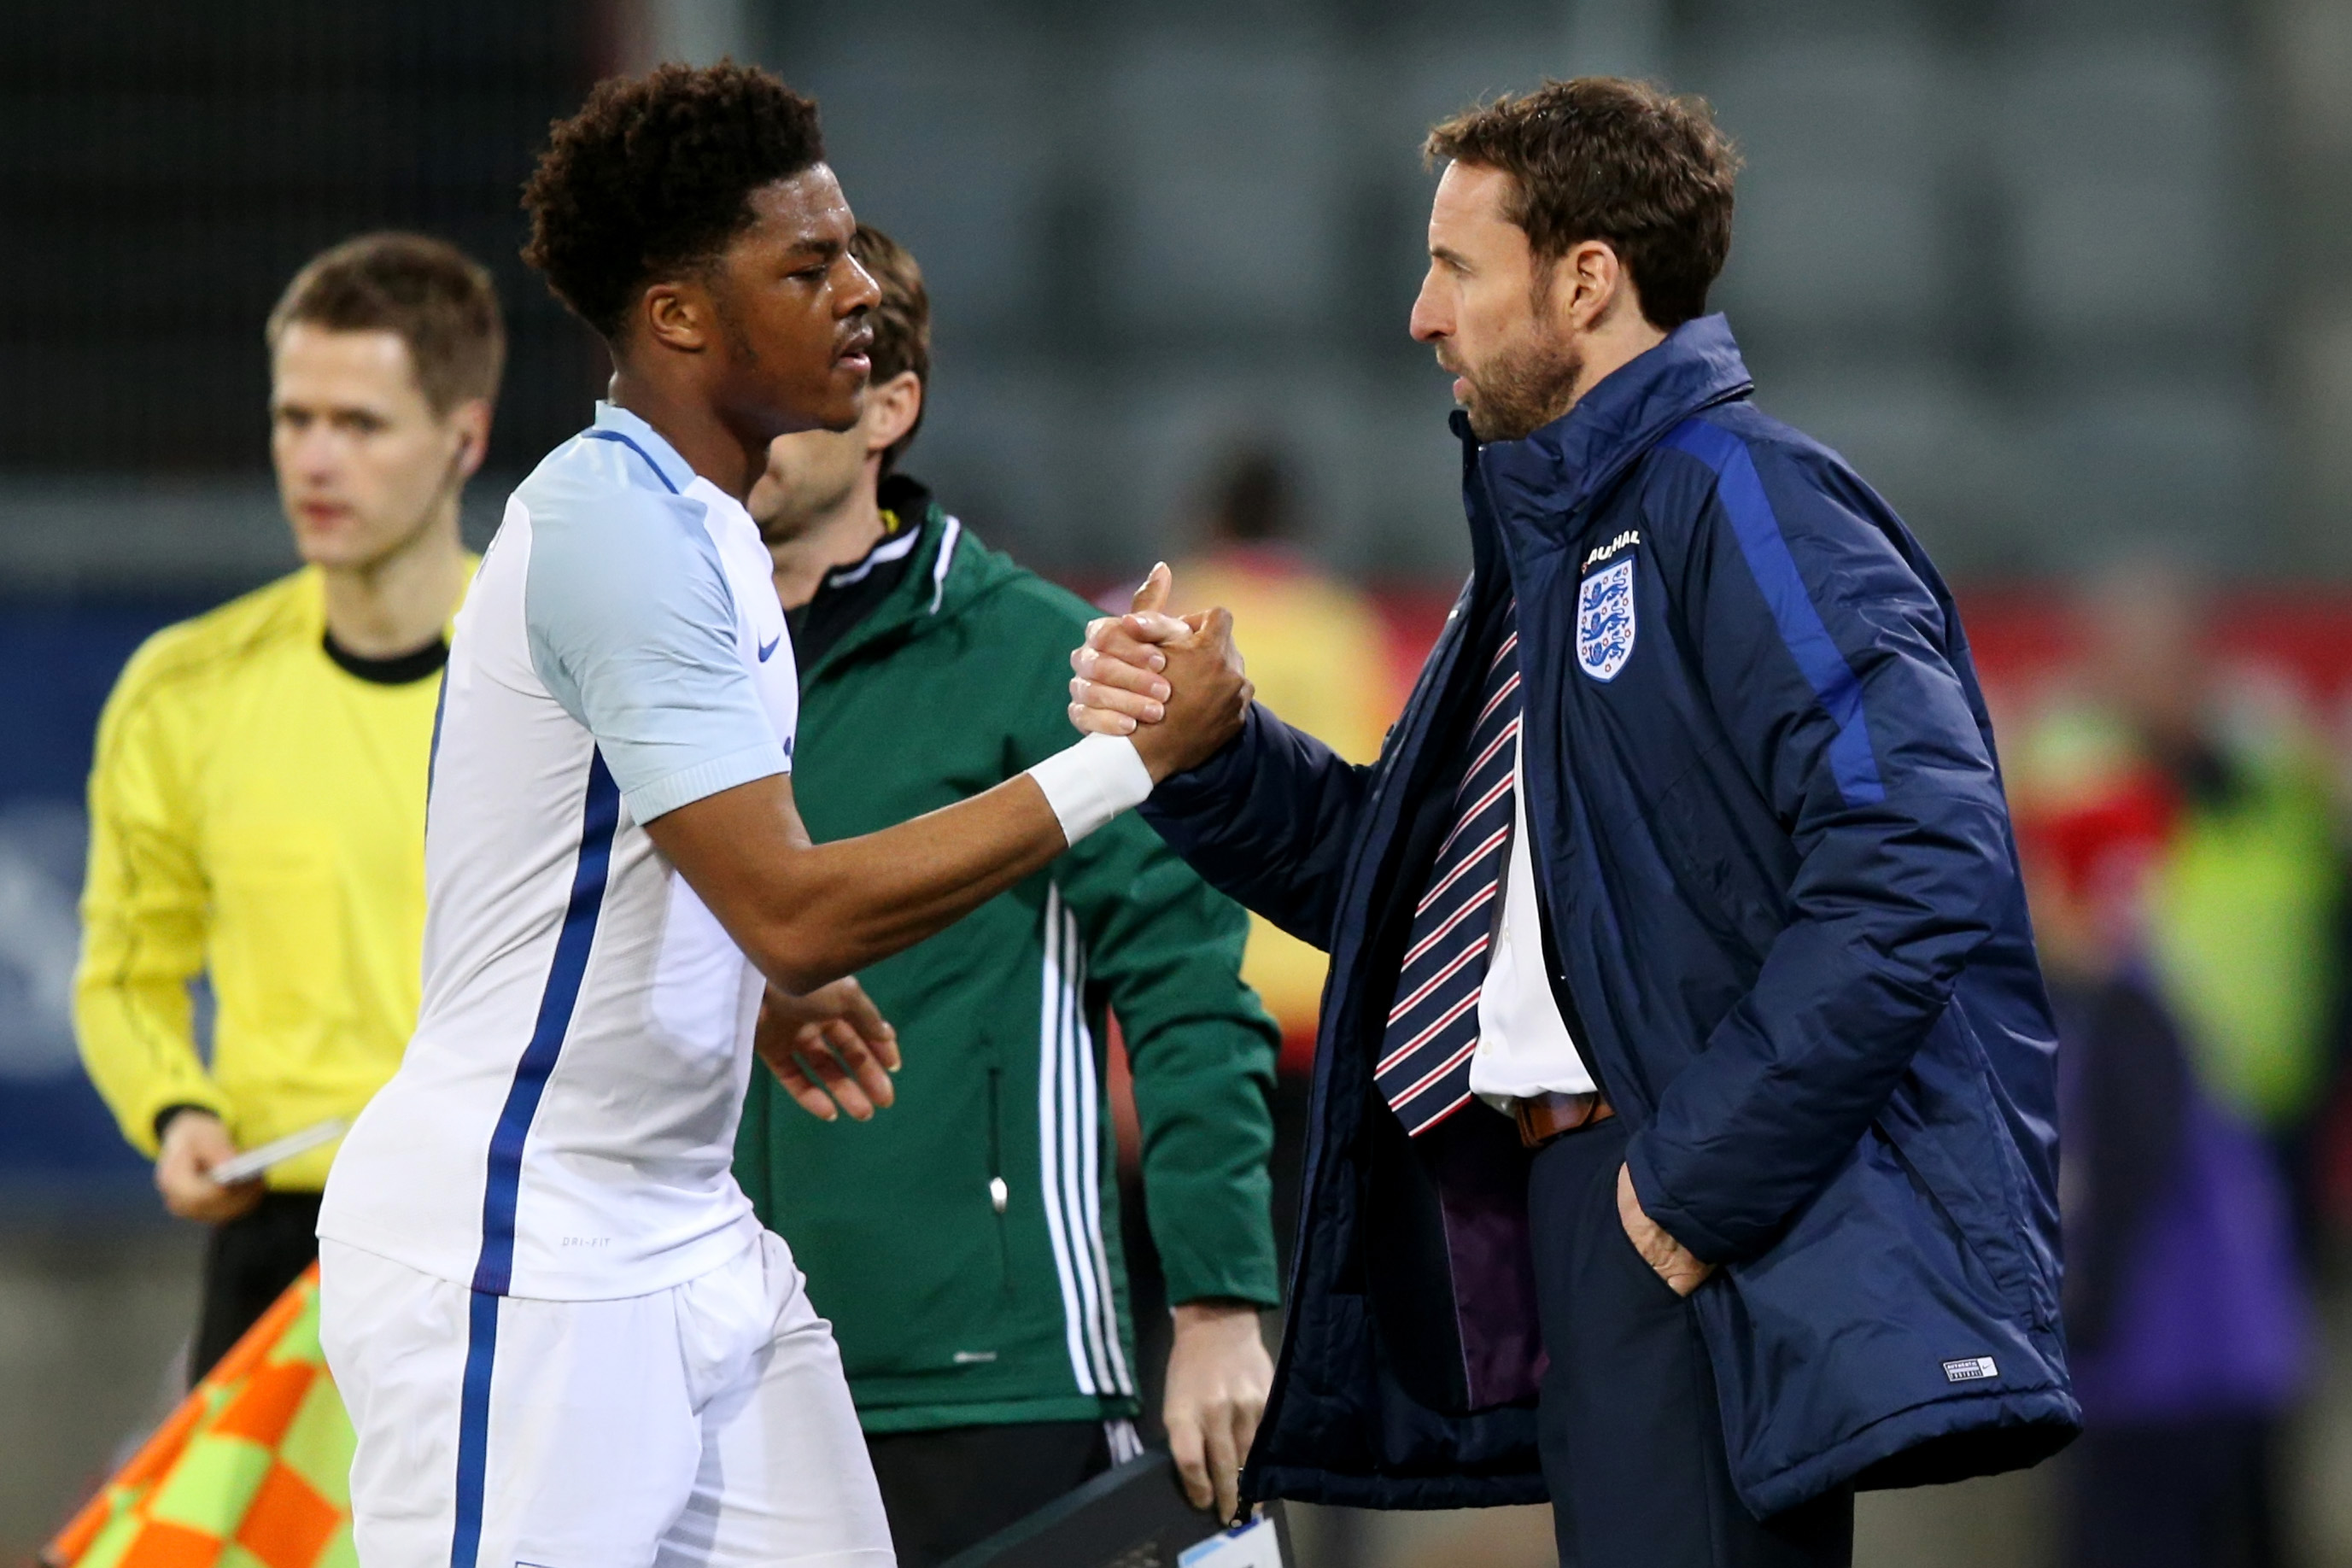 How can Gareth Southgate be the next England manager with speeches like this?